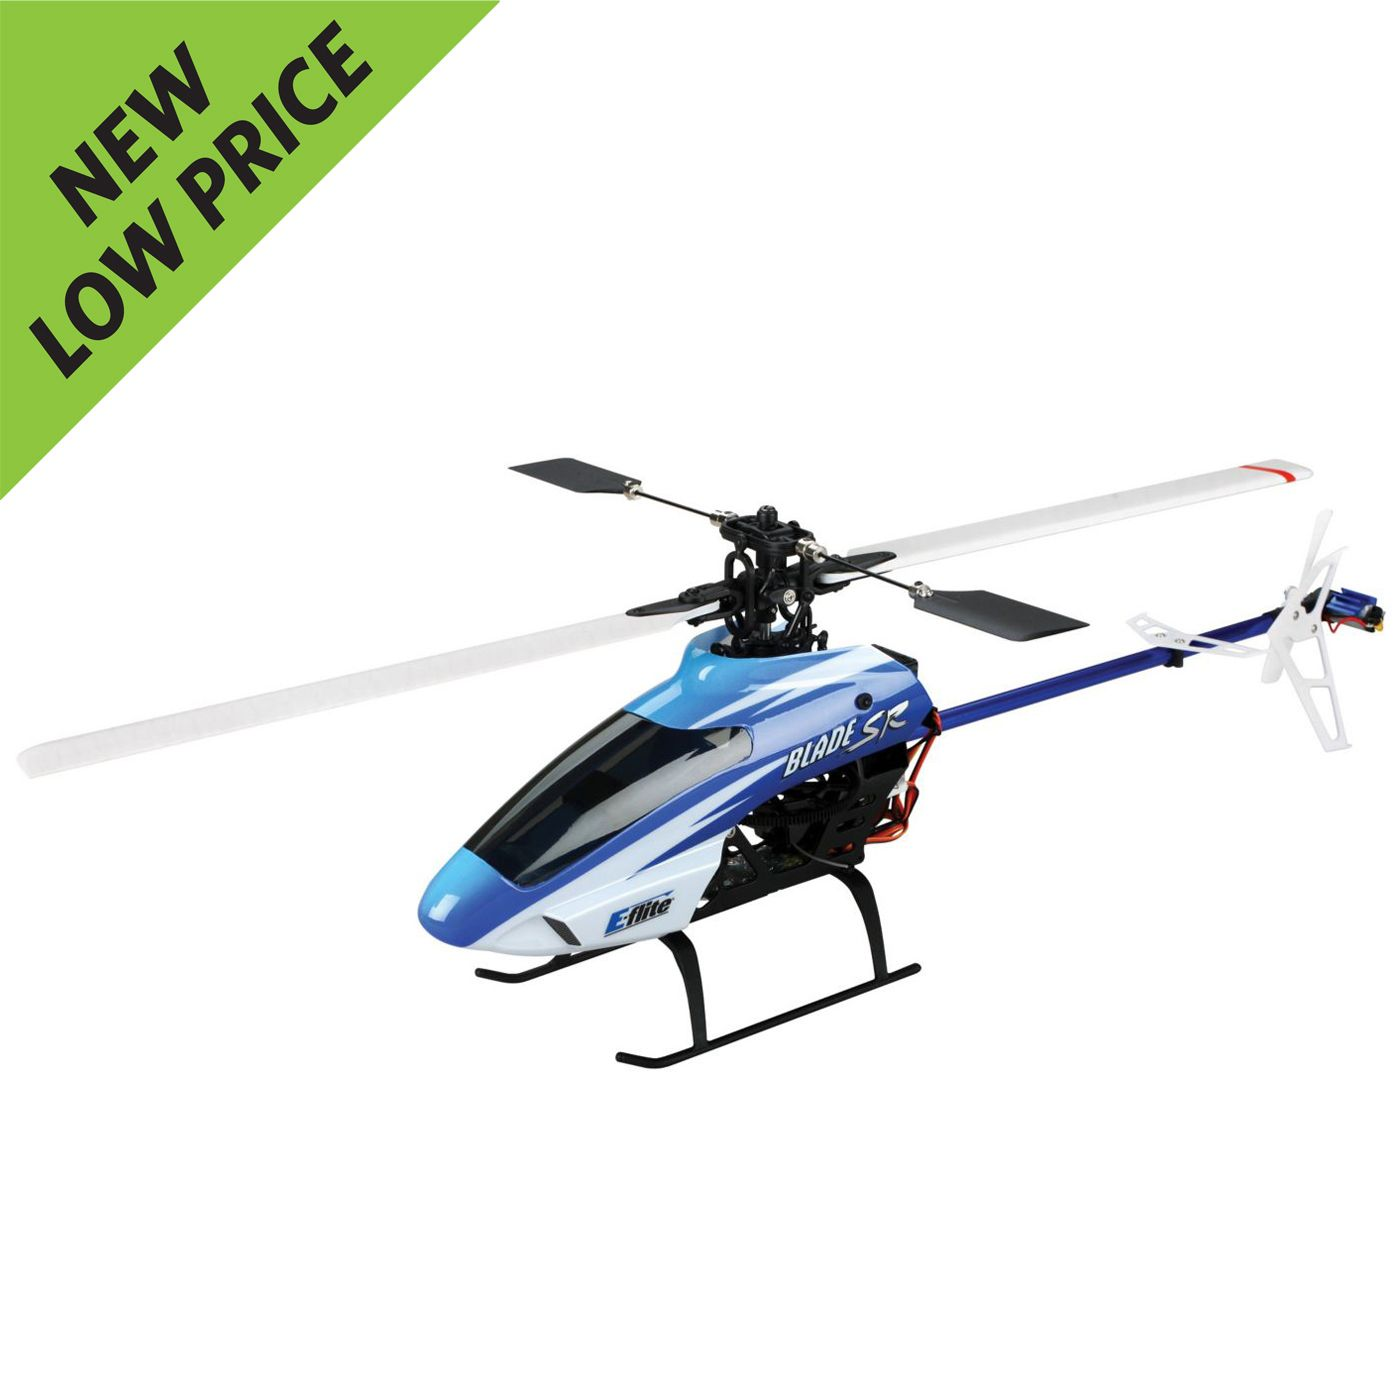 hight resolution of image for blade sr rtf electric micro heli from horizonhobby